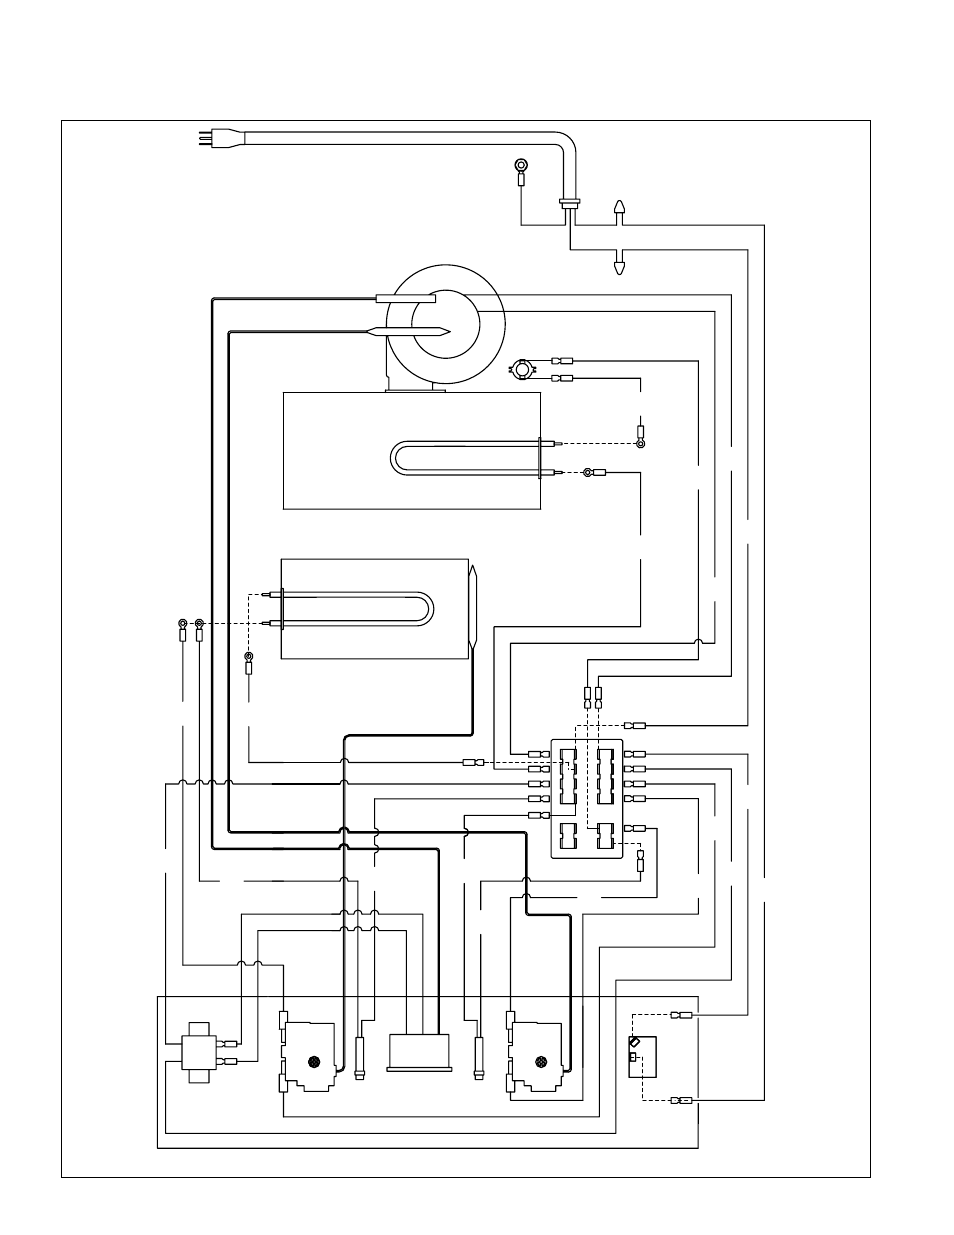 service and replacement parts  continued   wiring diagram  u2014 proofing module